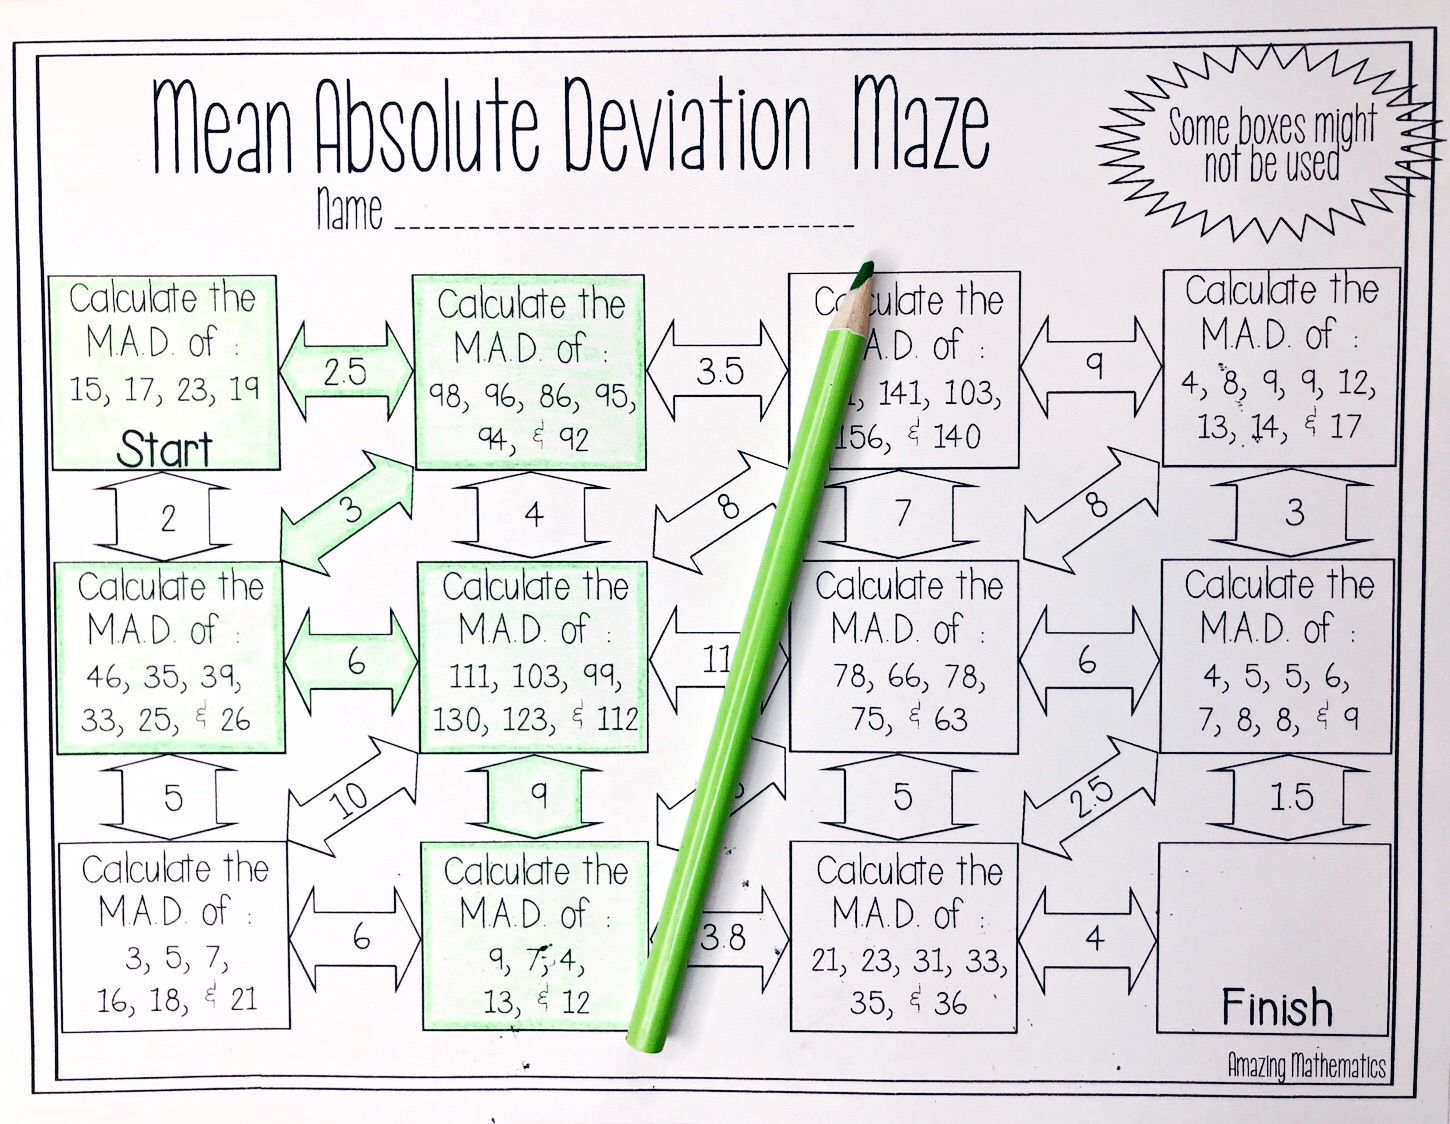 Mean Absolute Deviation Worksheet - Maze Activity   Math worksheets [ 1124 x 1450 Pixel ]